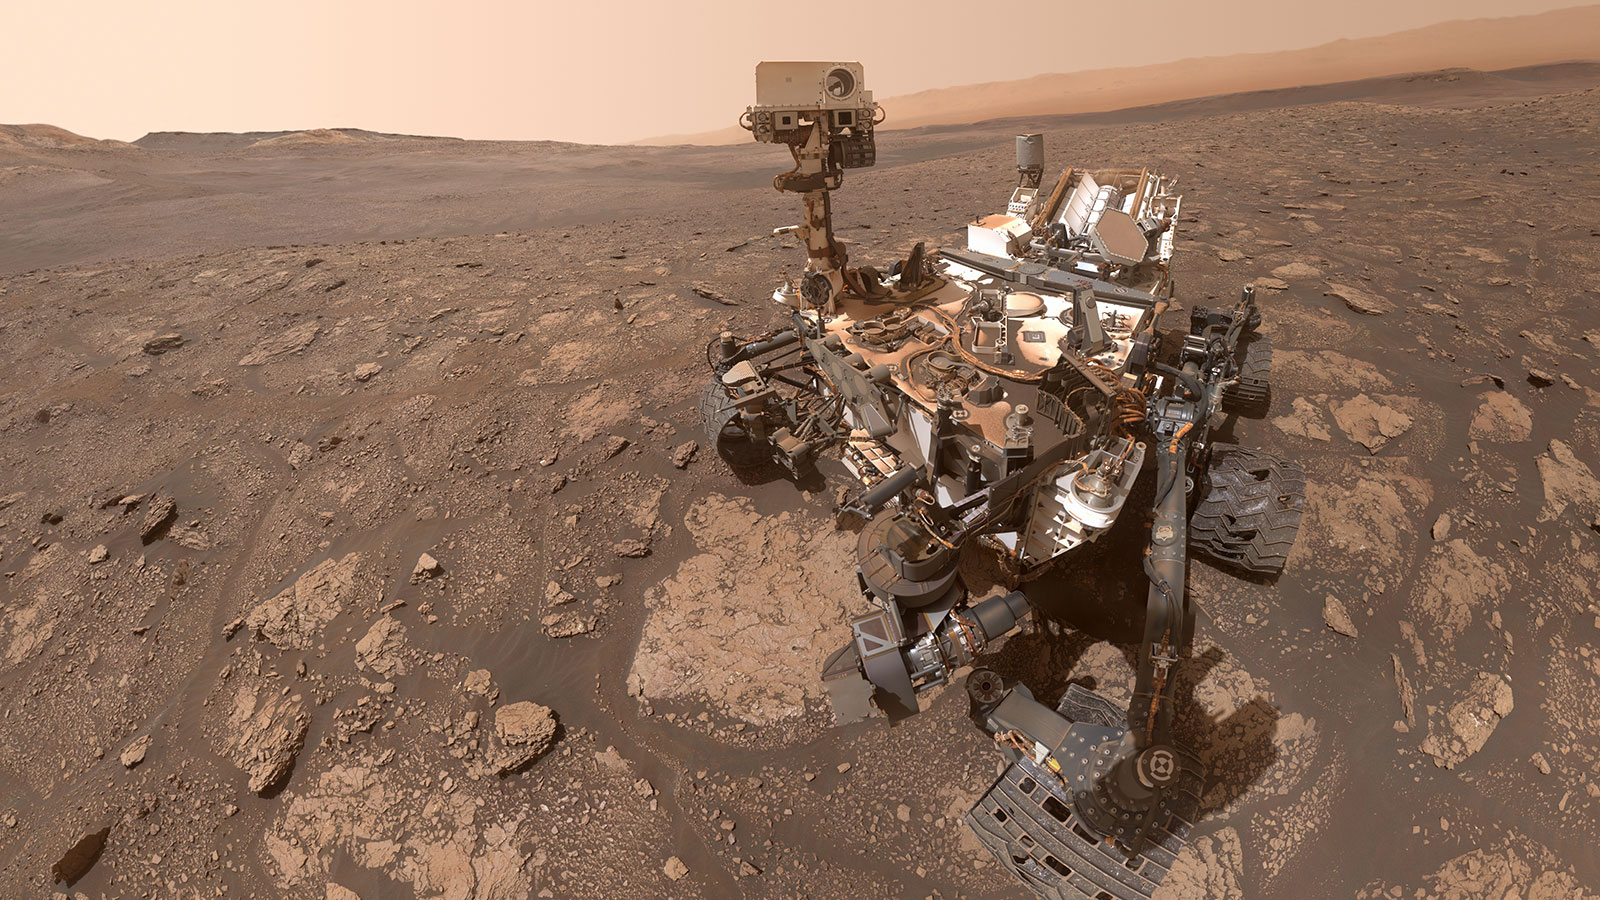 Curiosity's Selfie at the 'Mary Anning' Location on Mars. (NASA/JPL-Caltech/MSSS)